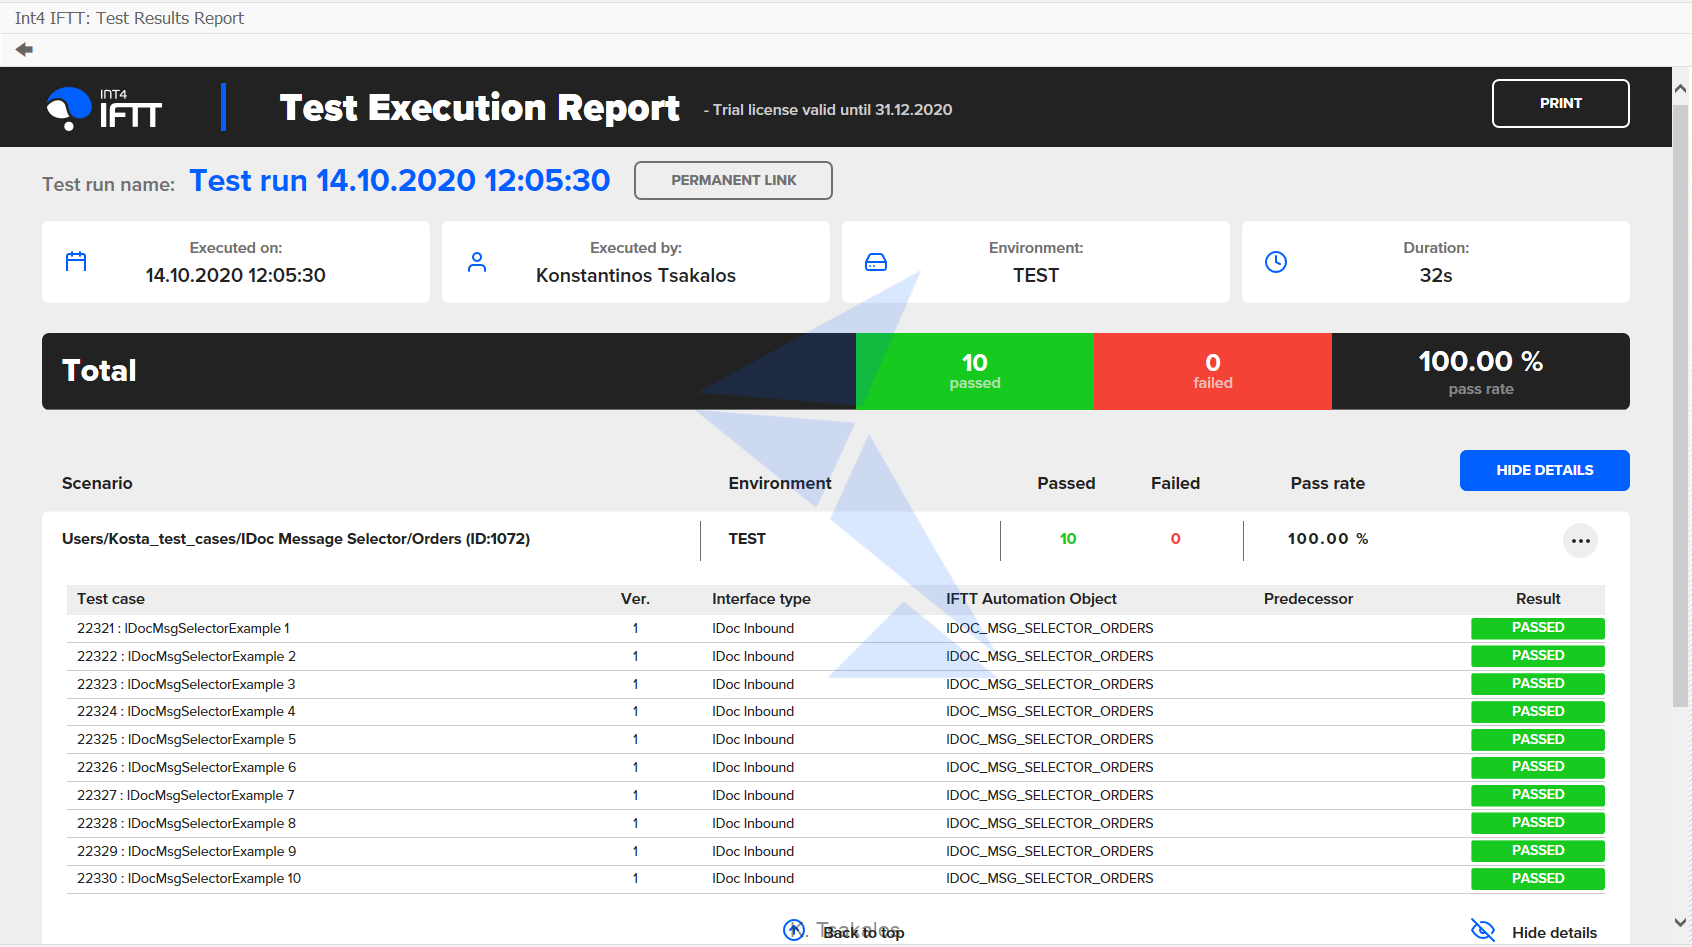 Execution report